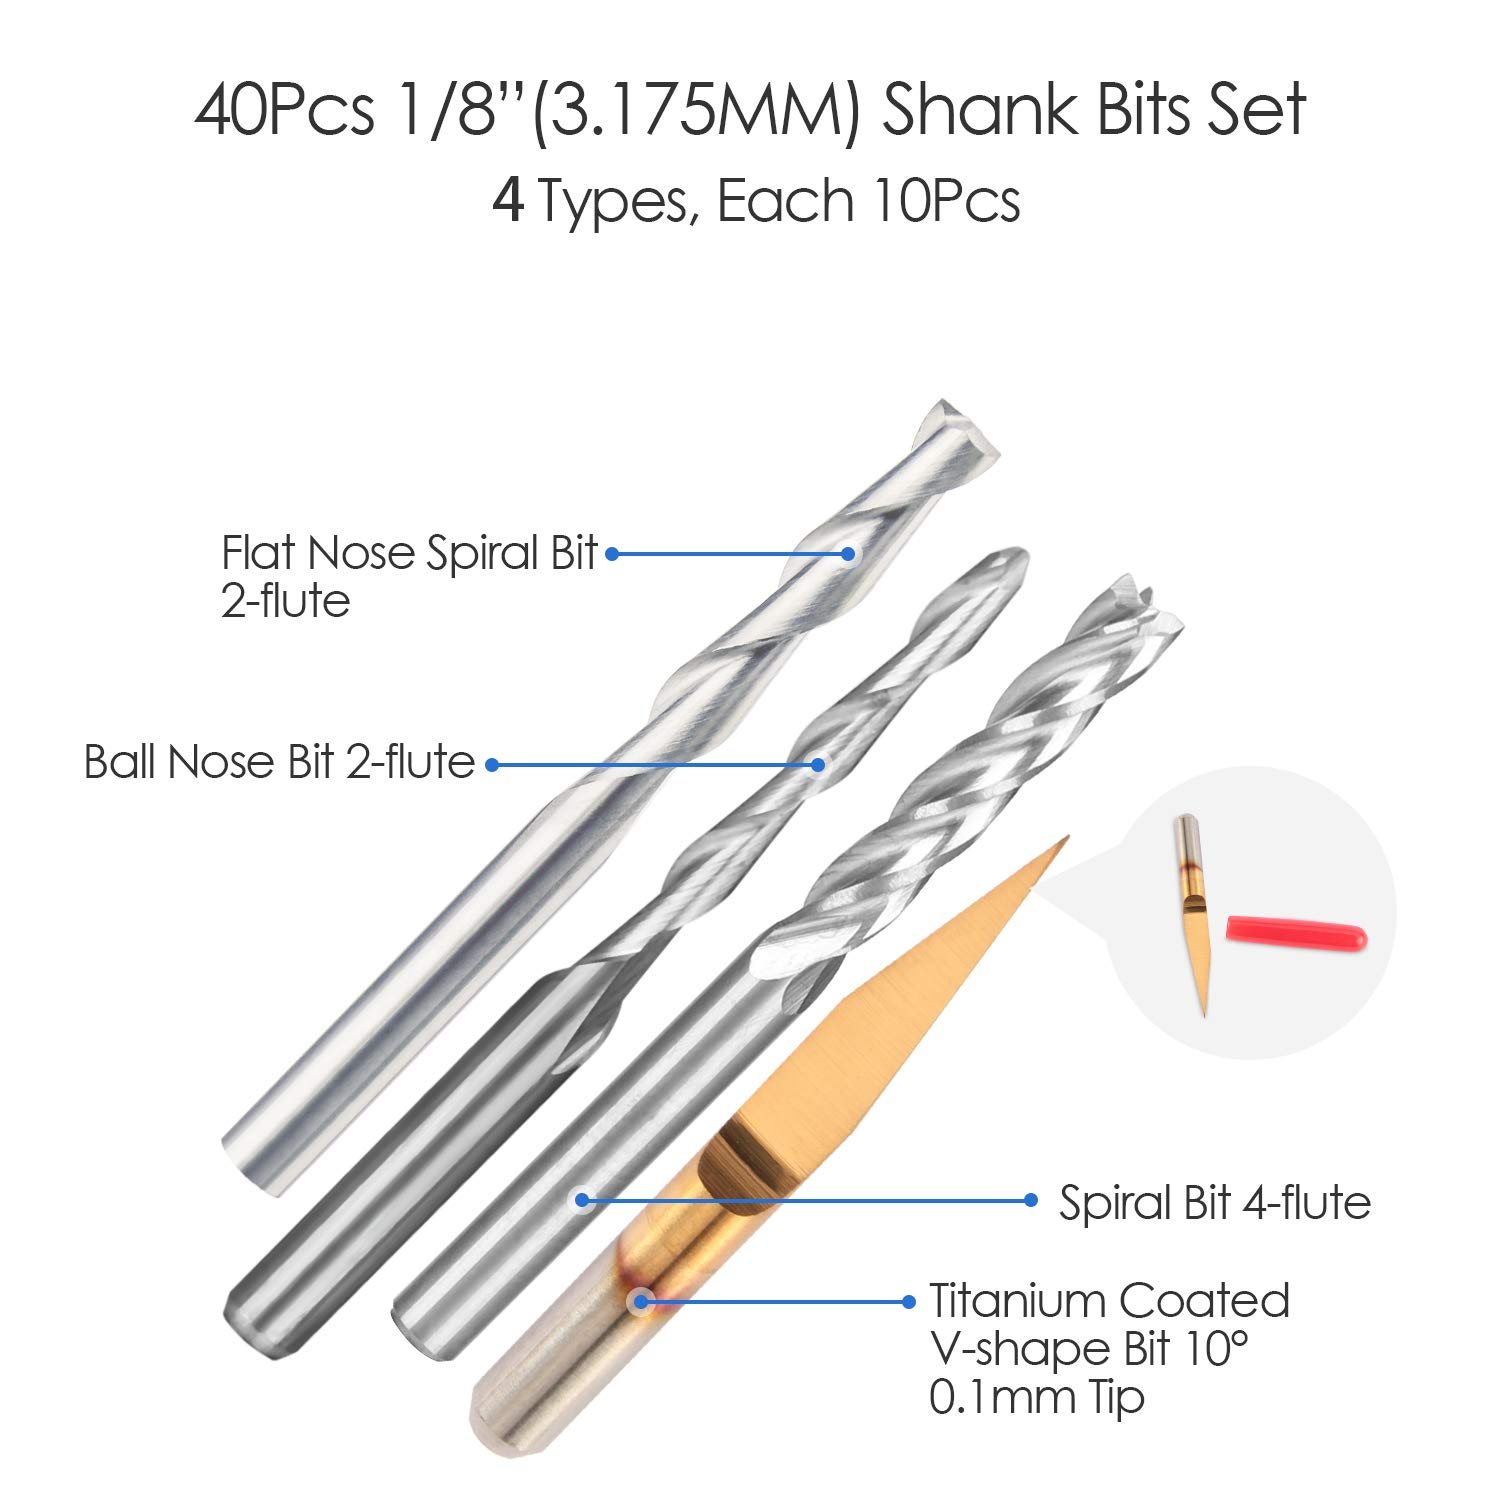 HQMaster End Mill Combination Kit Set CNC Router Bits Cutter Cutting Milling Tool (4 Type, Each 10Pcs) Including Flat Nose/Ball Nose End Mill, 4 Flutes End Mill and 10° V-shape Engraving Bits by HQMaster (Image #2)